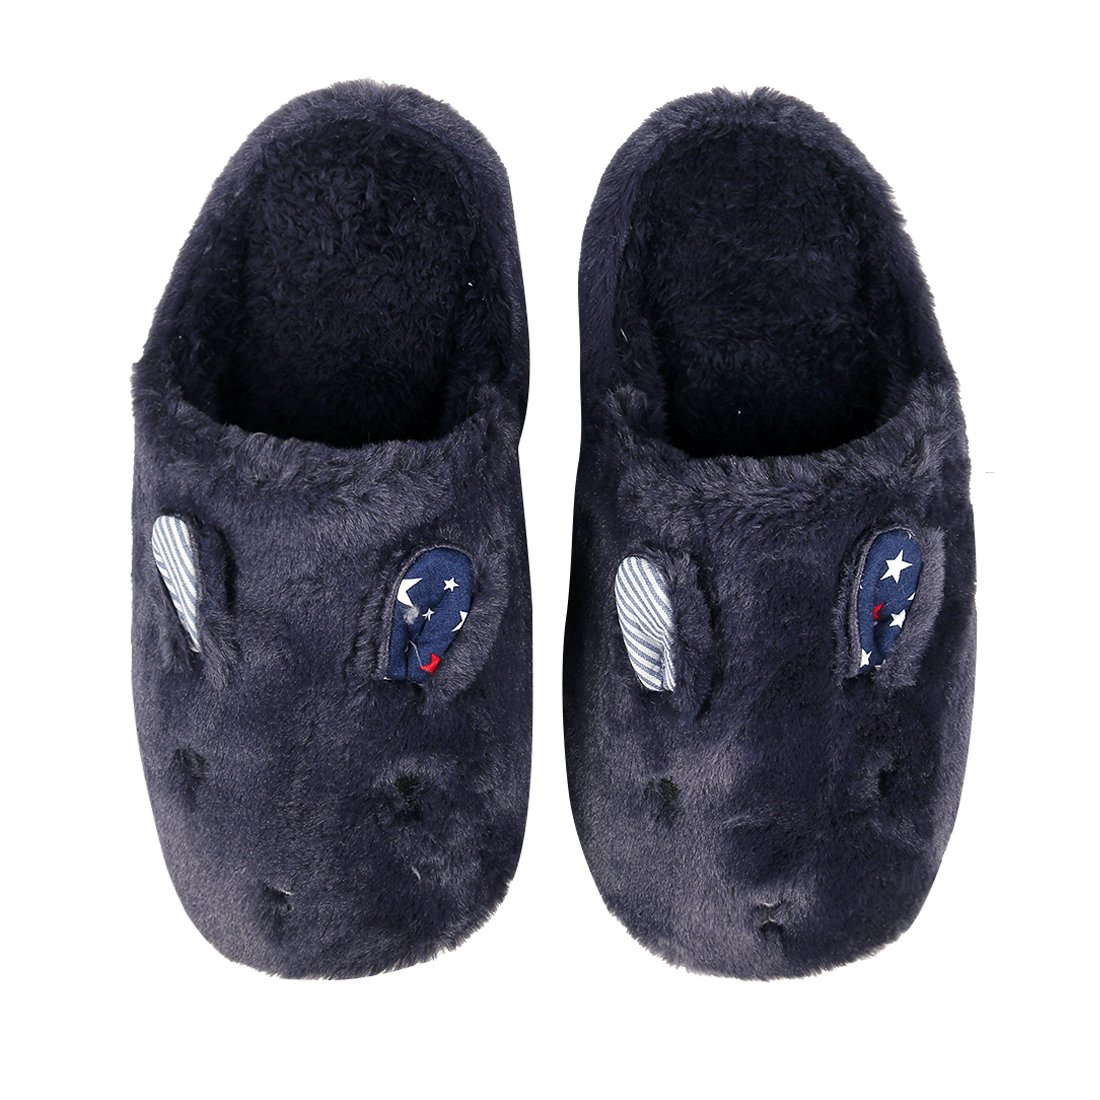 3d7a14f70 Galleon - Cute Animal Home Slippers Navy Rabbit Indoor Slippers Waterproof  Sole Fuzzy House Slippers Kids 8N-L